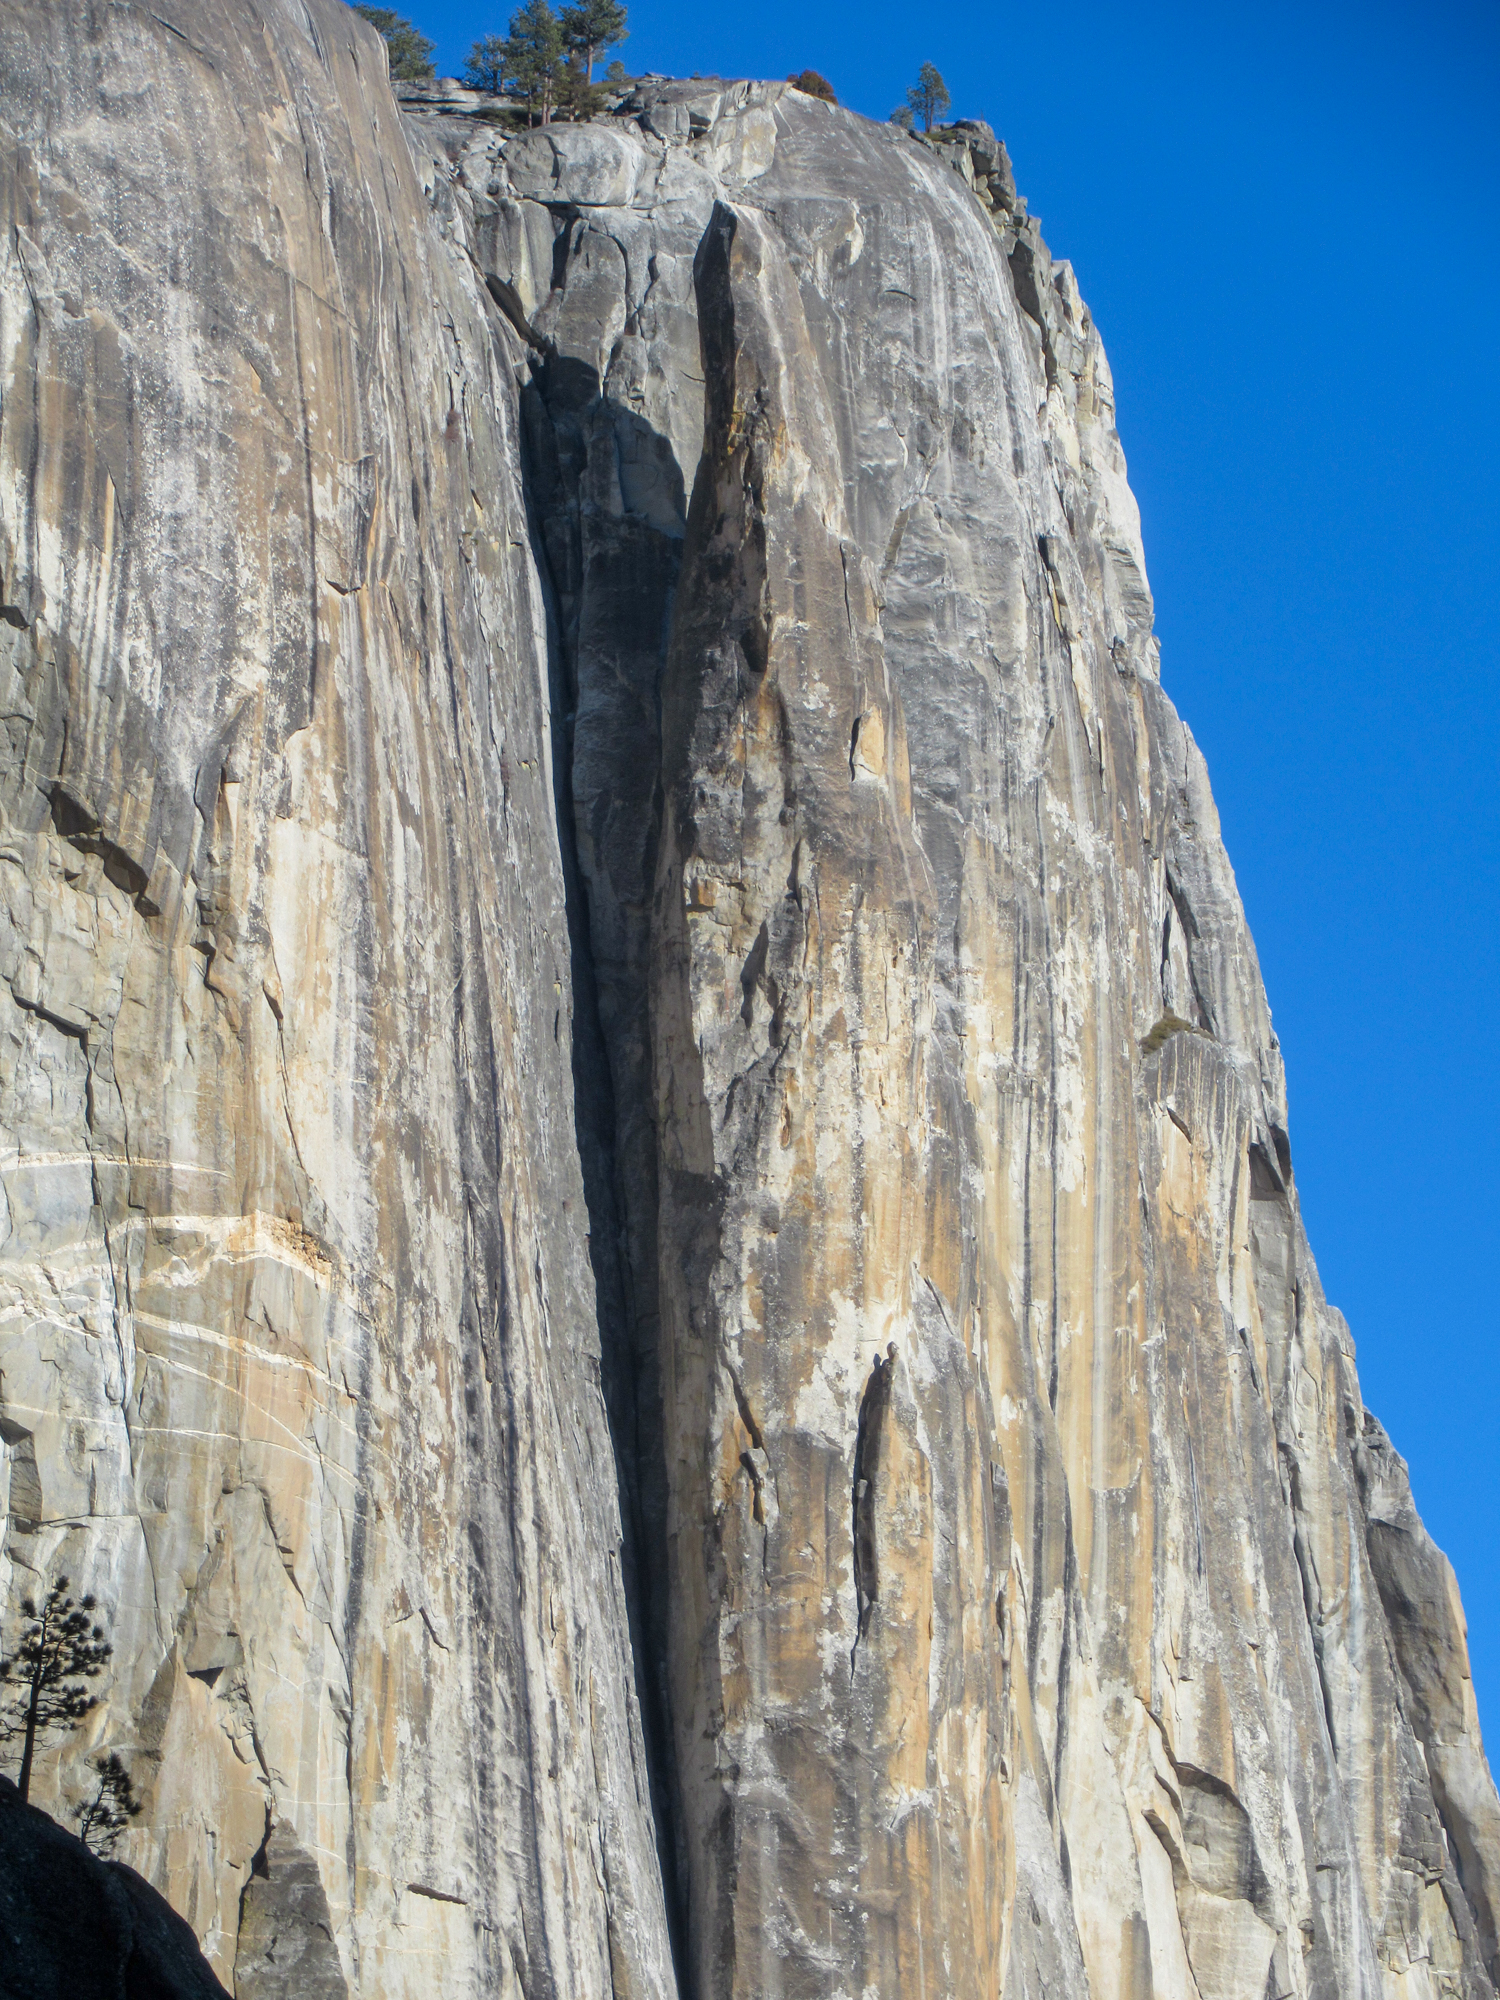 The granite formation of lost arrow spire comes off the wall of the valley.